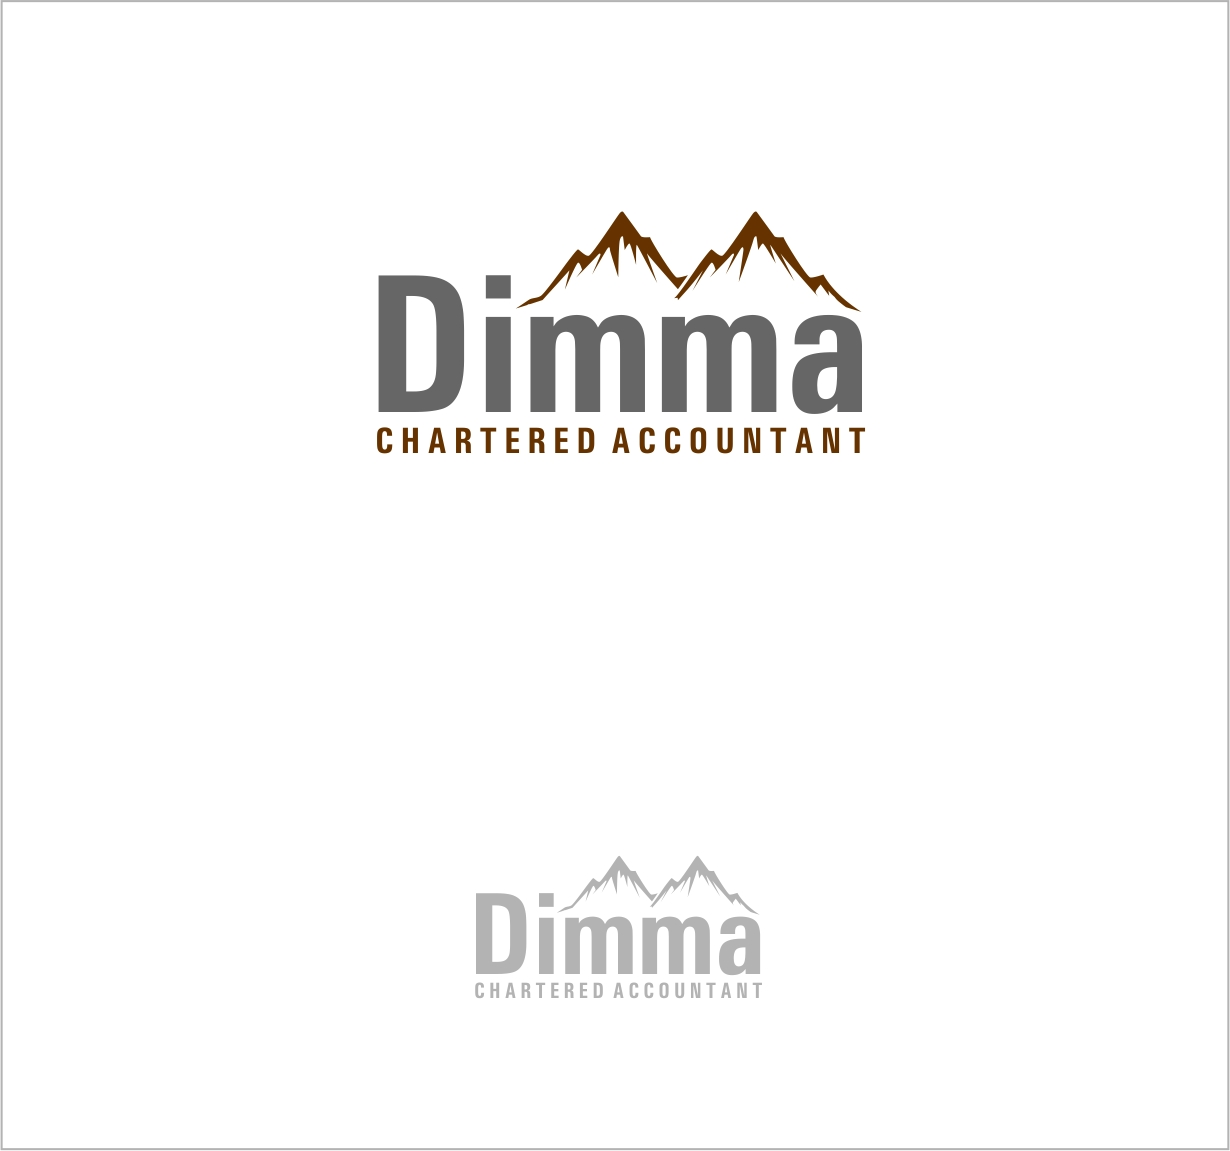 Logo Design by haidu - Entry No. 168 in the Logo Design Contest Creative Logo Design for Dimma Chartered Accountant.